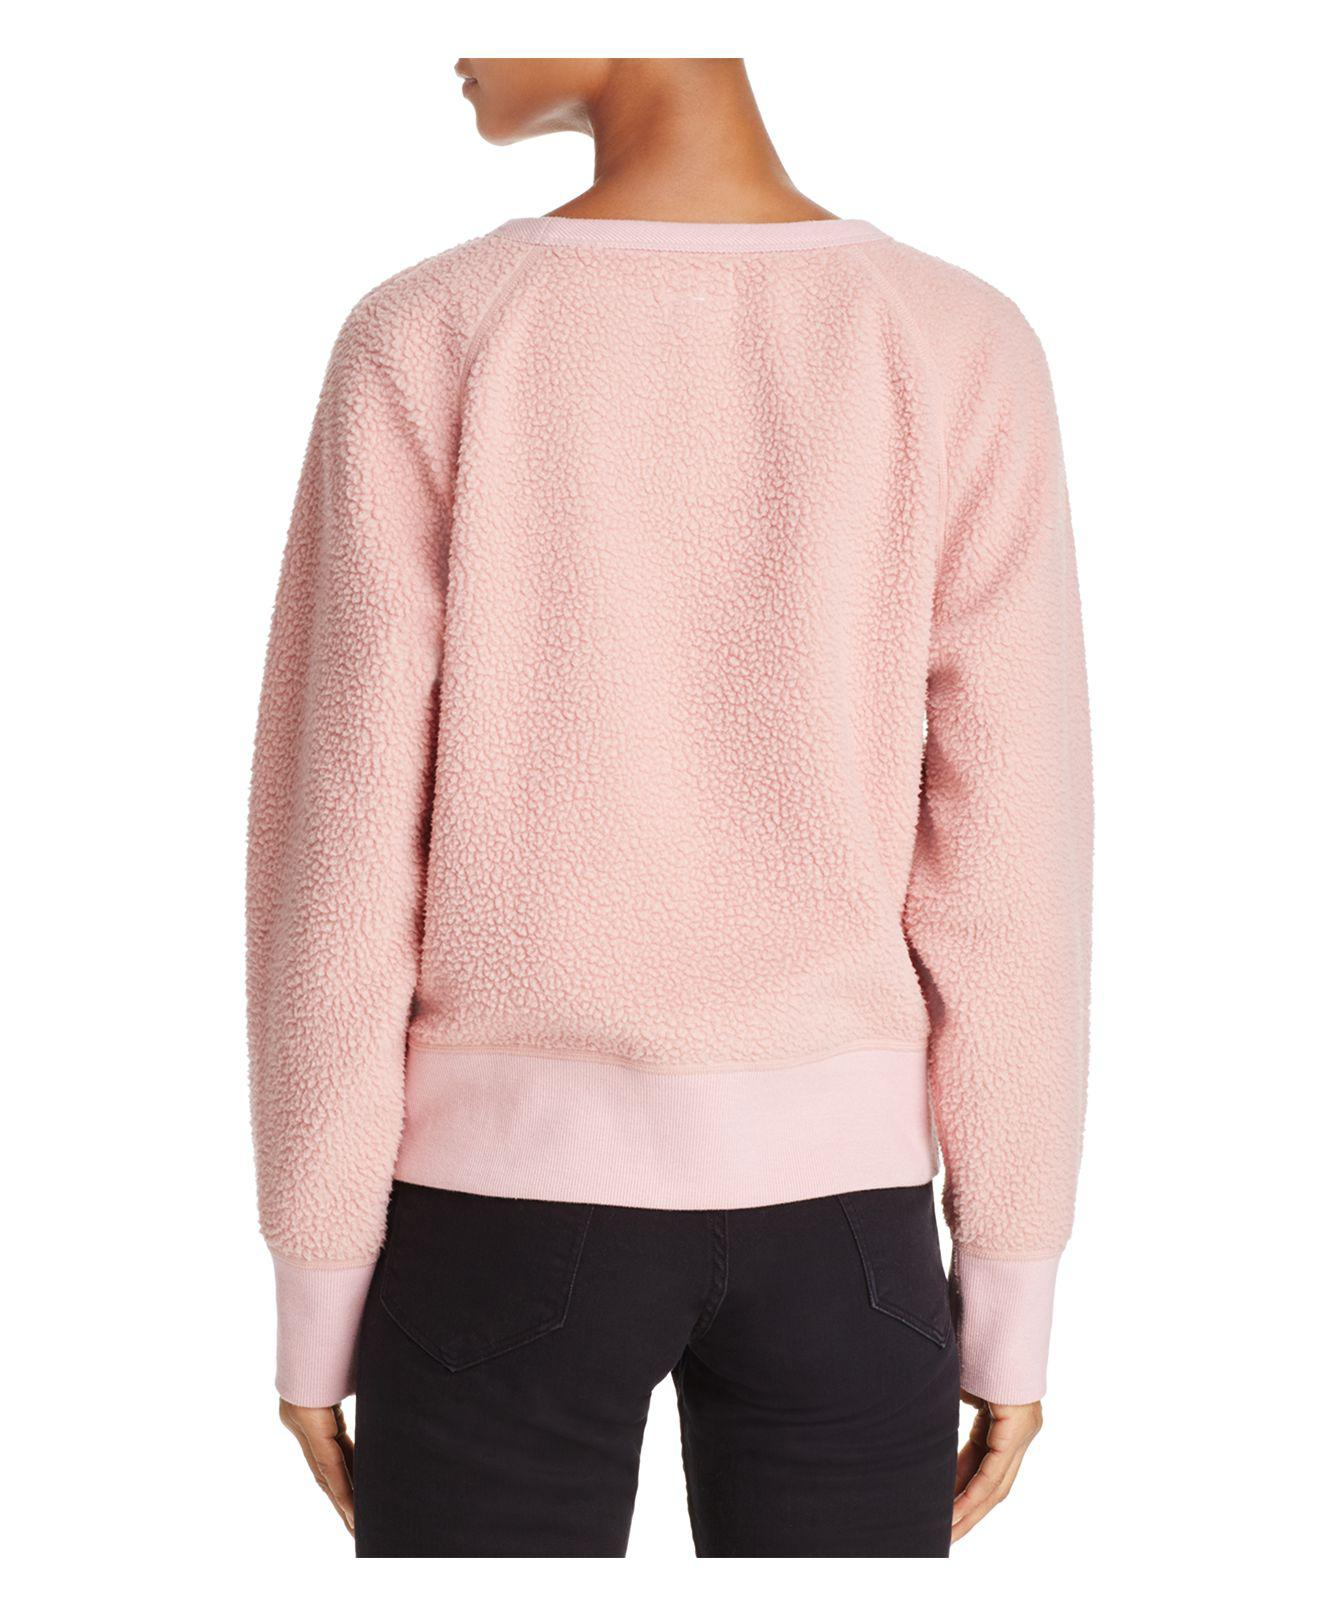 Rag & bone Sherpa Fleece Sweatshirt in Pink | Lyst